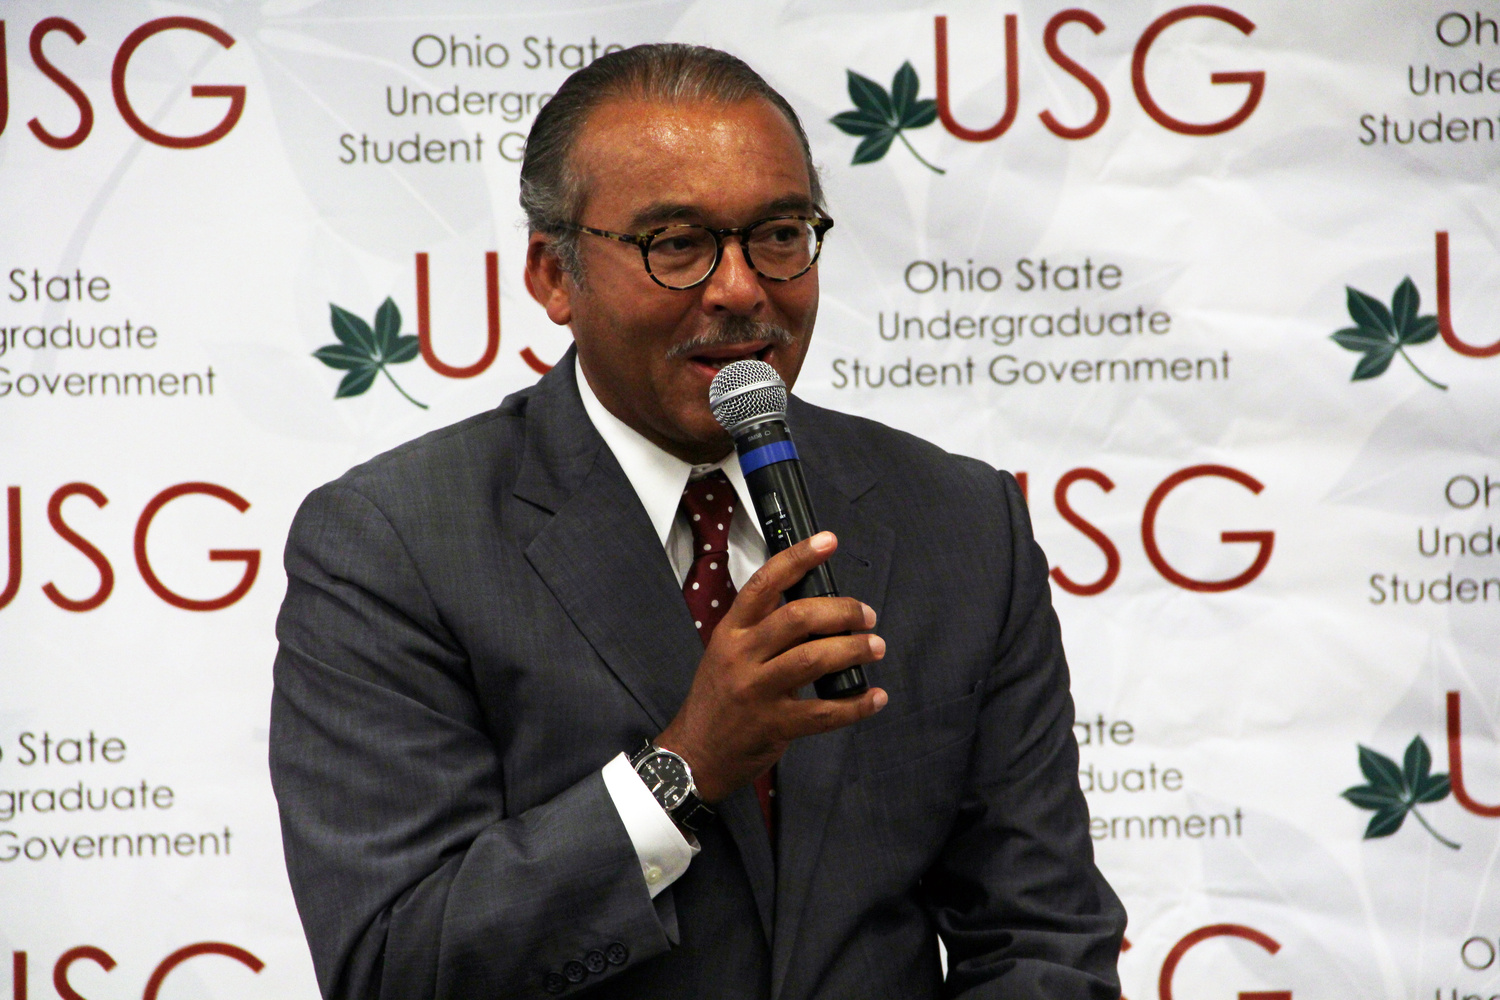 Columbus Mayor Michael Coleman speaks at a USG General Assembly meeting Oct. 1 at Ohio Union about the Columbus Education Plan. Credit: Ritika Shah / Asst. photo editor